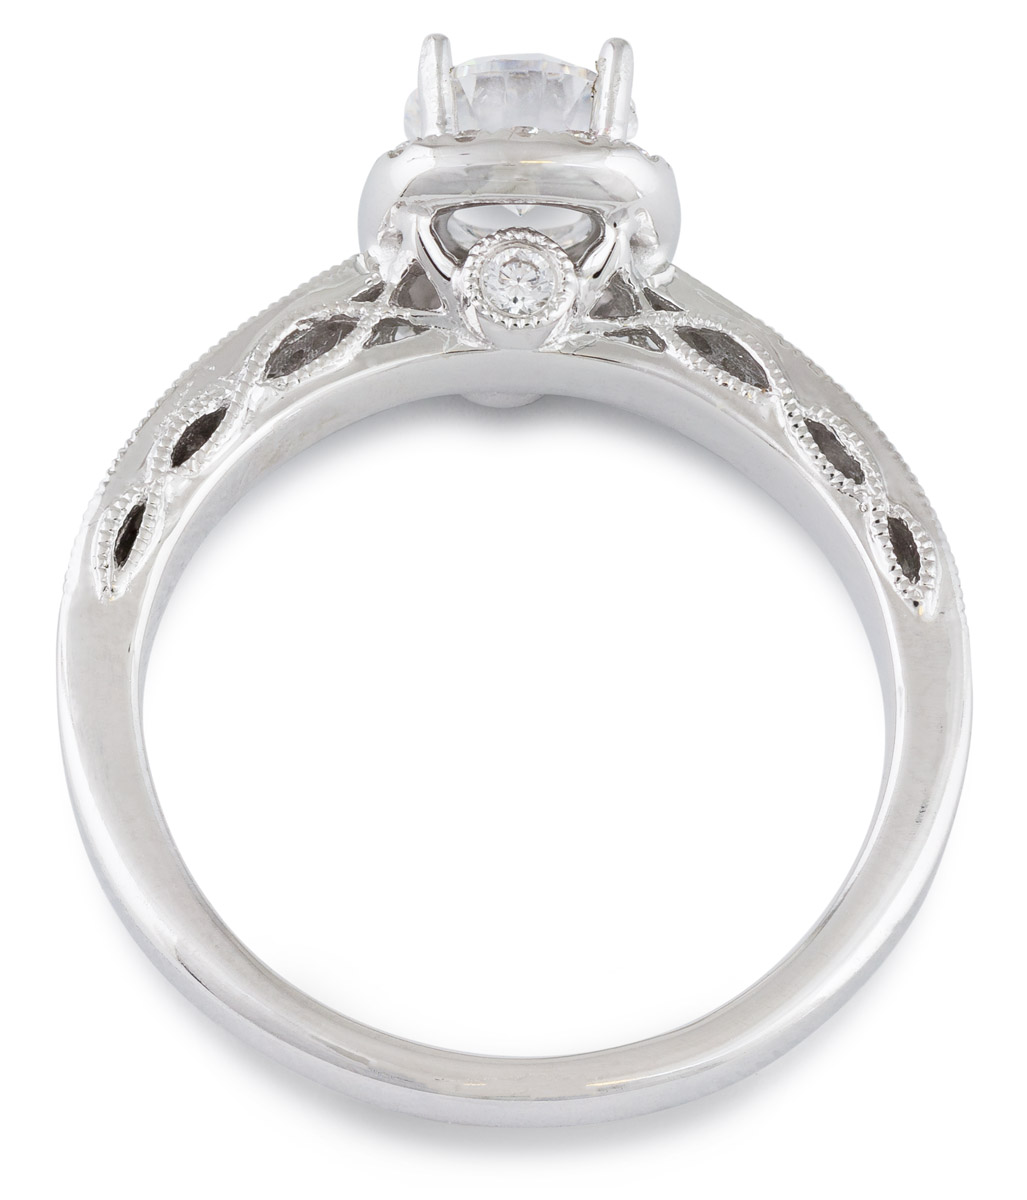 Diamond Halo Engagement Ring with Filigree Detail - Top